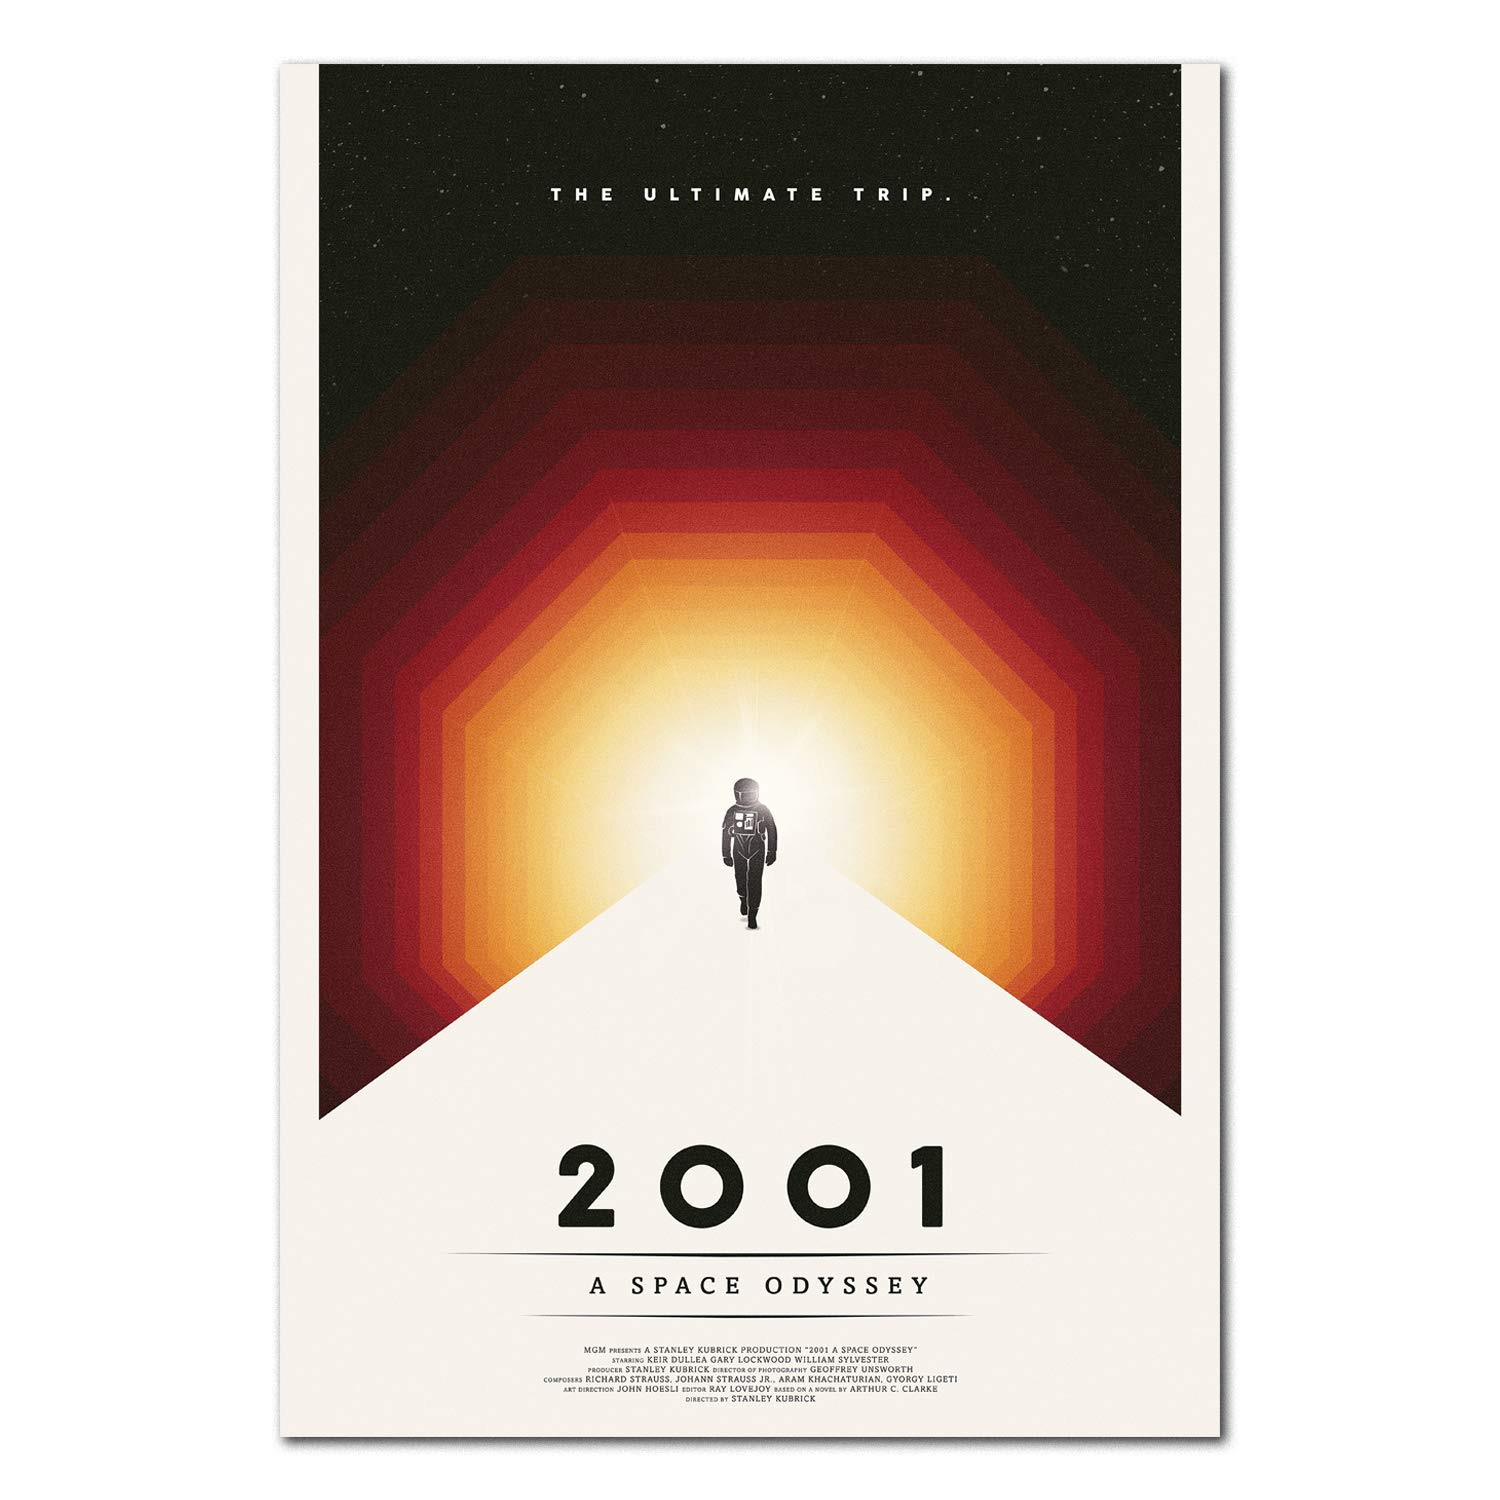 2001 A Space Odyssey Movie Poster (11x17)